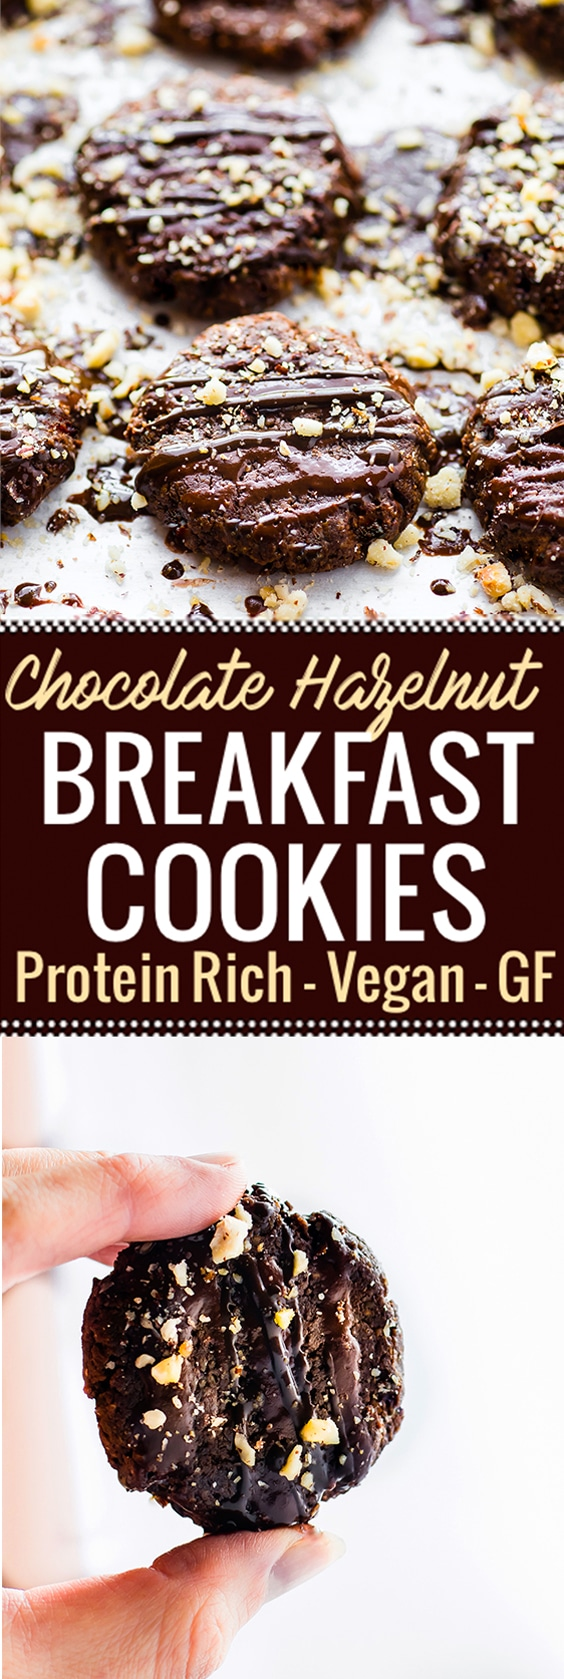 Vegan Chocolate Hazelnut Breakfast Protein Cookies made with just a few simple Ingredients! These protein cookies are packed with real food and plant based protein! Hazelnuts, banana, plant protein, and dark chocolate. Vegan, flourless, and tastes like dessert. A chocolate protein cookie you're totally allowed to eat for breakfast. www.cottercrunch.com #onenewGNC